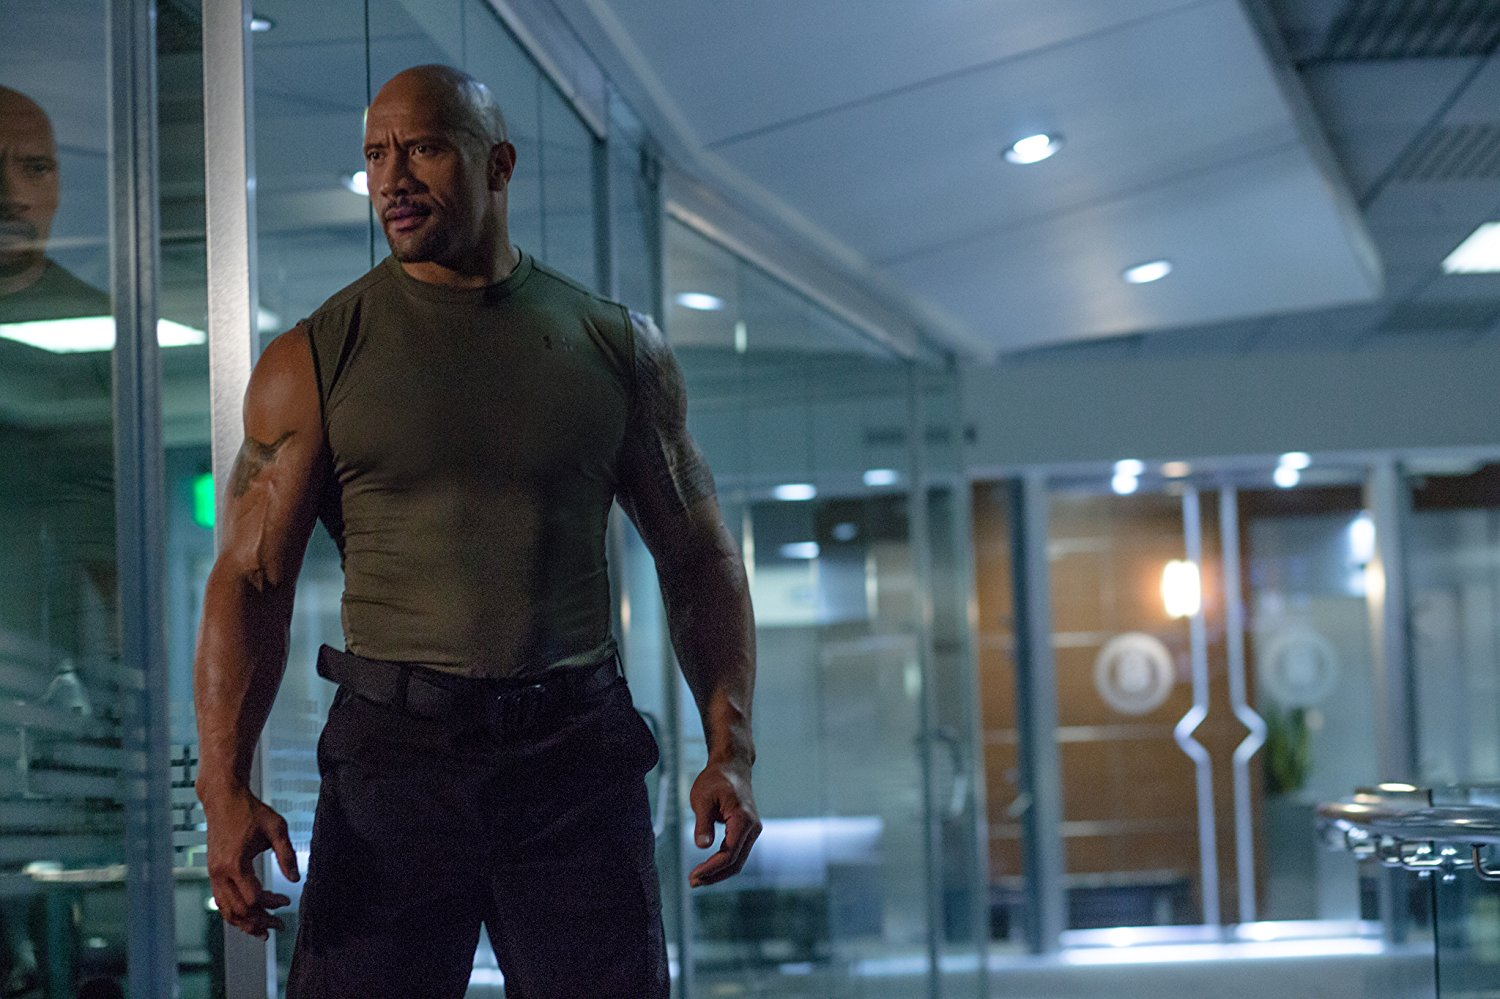 The Most Ludicrously Jacked Men In Movies